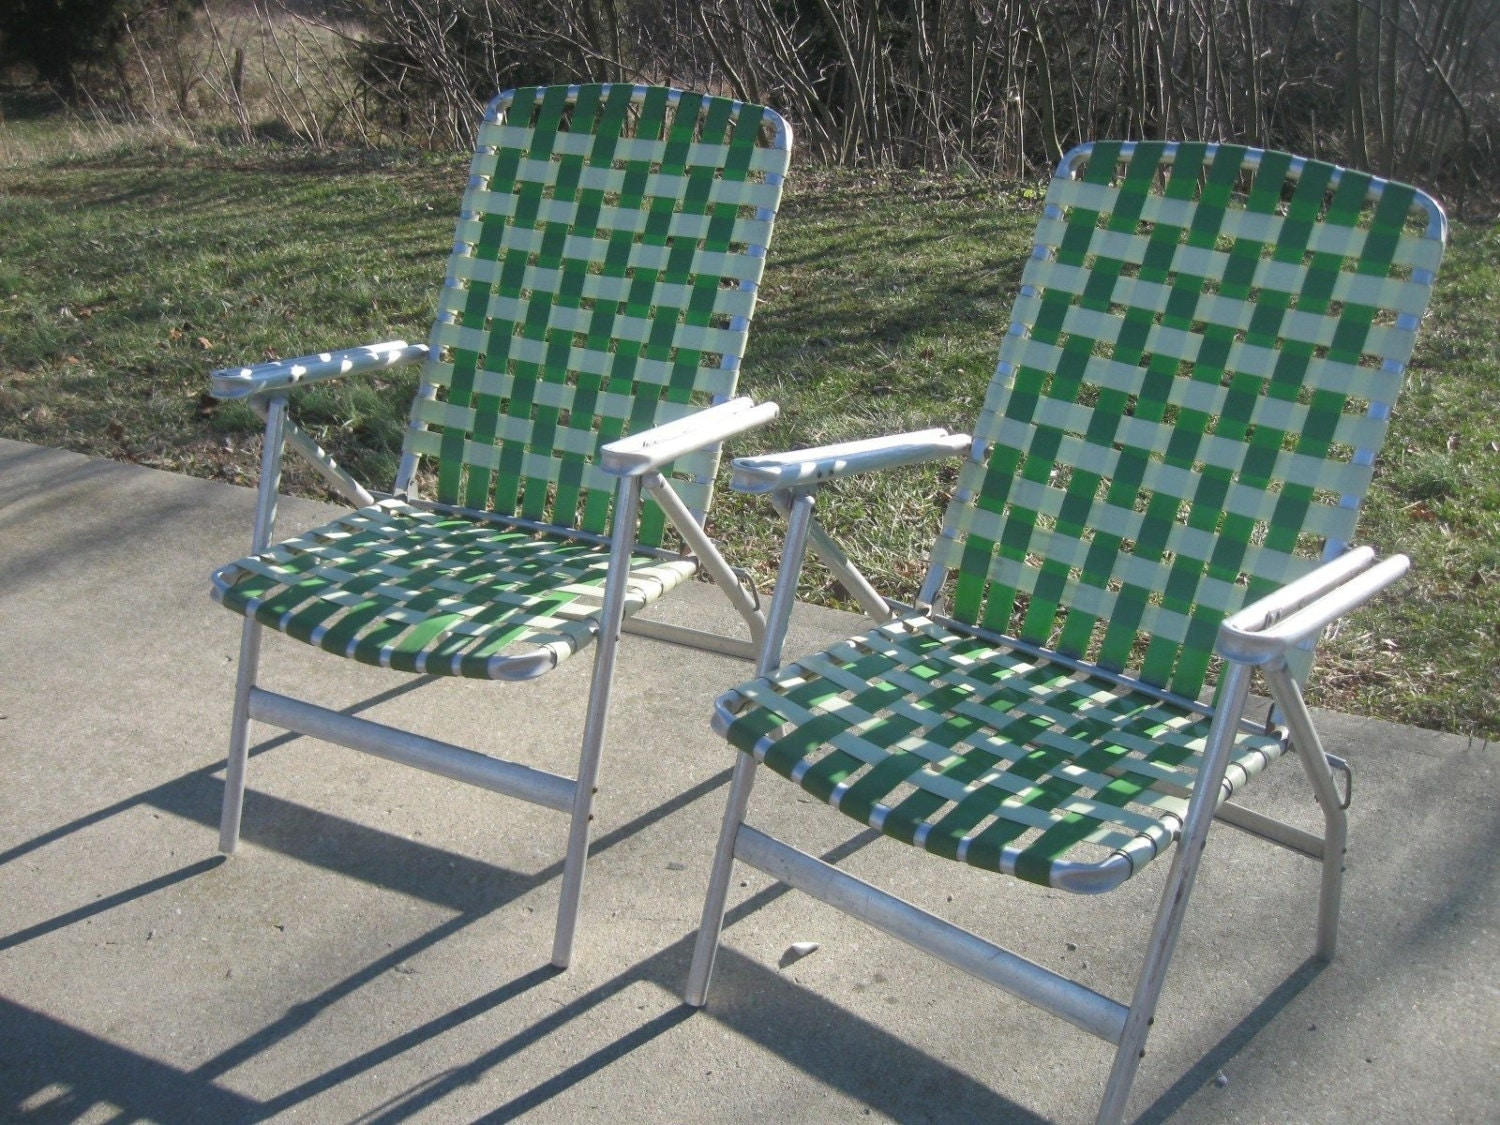 Vtg Aluminum Folding LAWN CHAIRS Jadite Green by Eclecticdesigns22